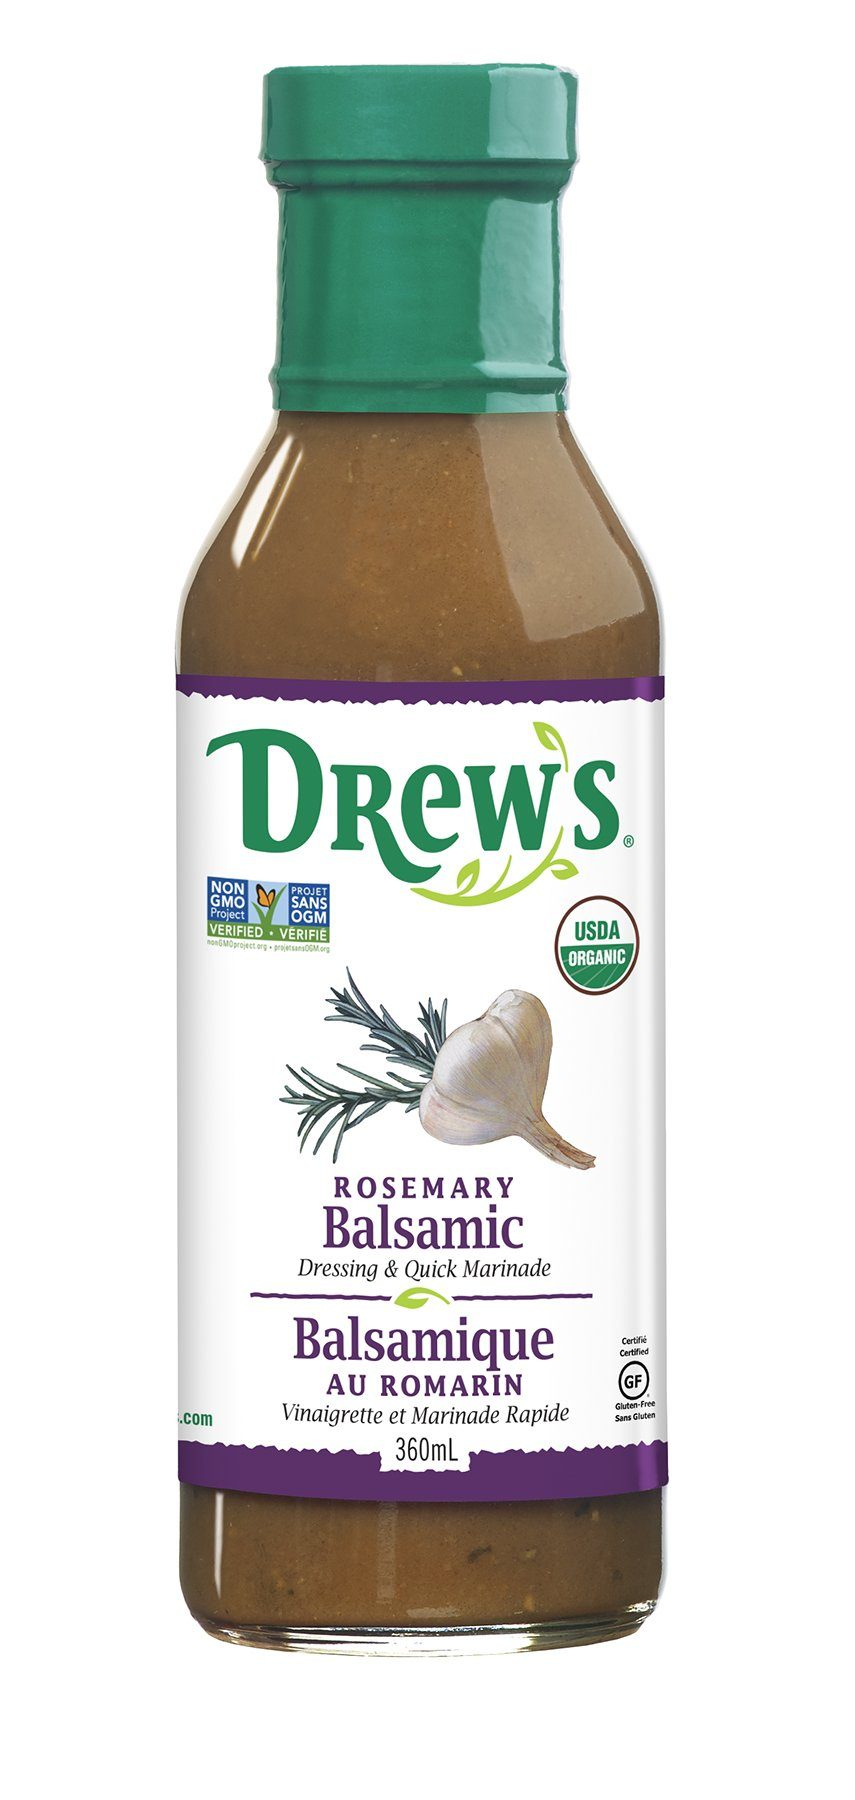 Food & Drink - Drew's - Rosemary Balsamic Dressing - 360ml